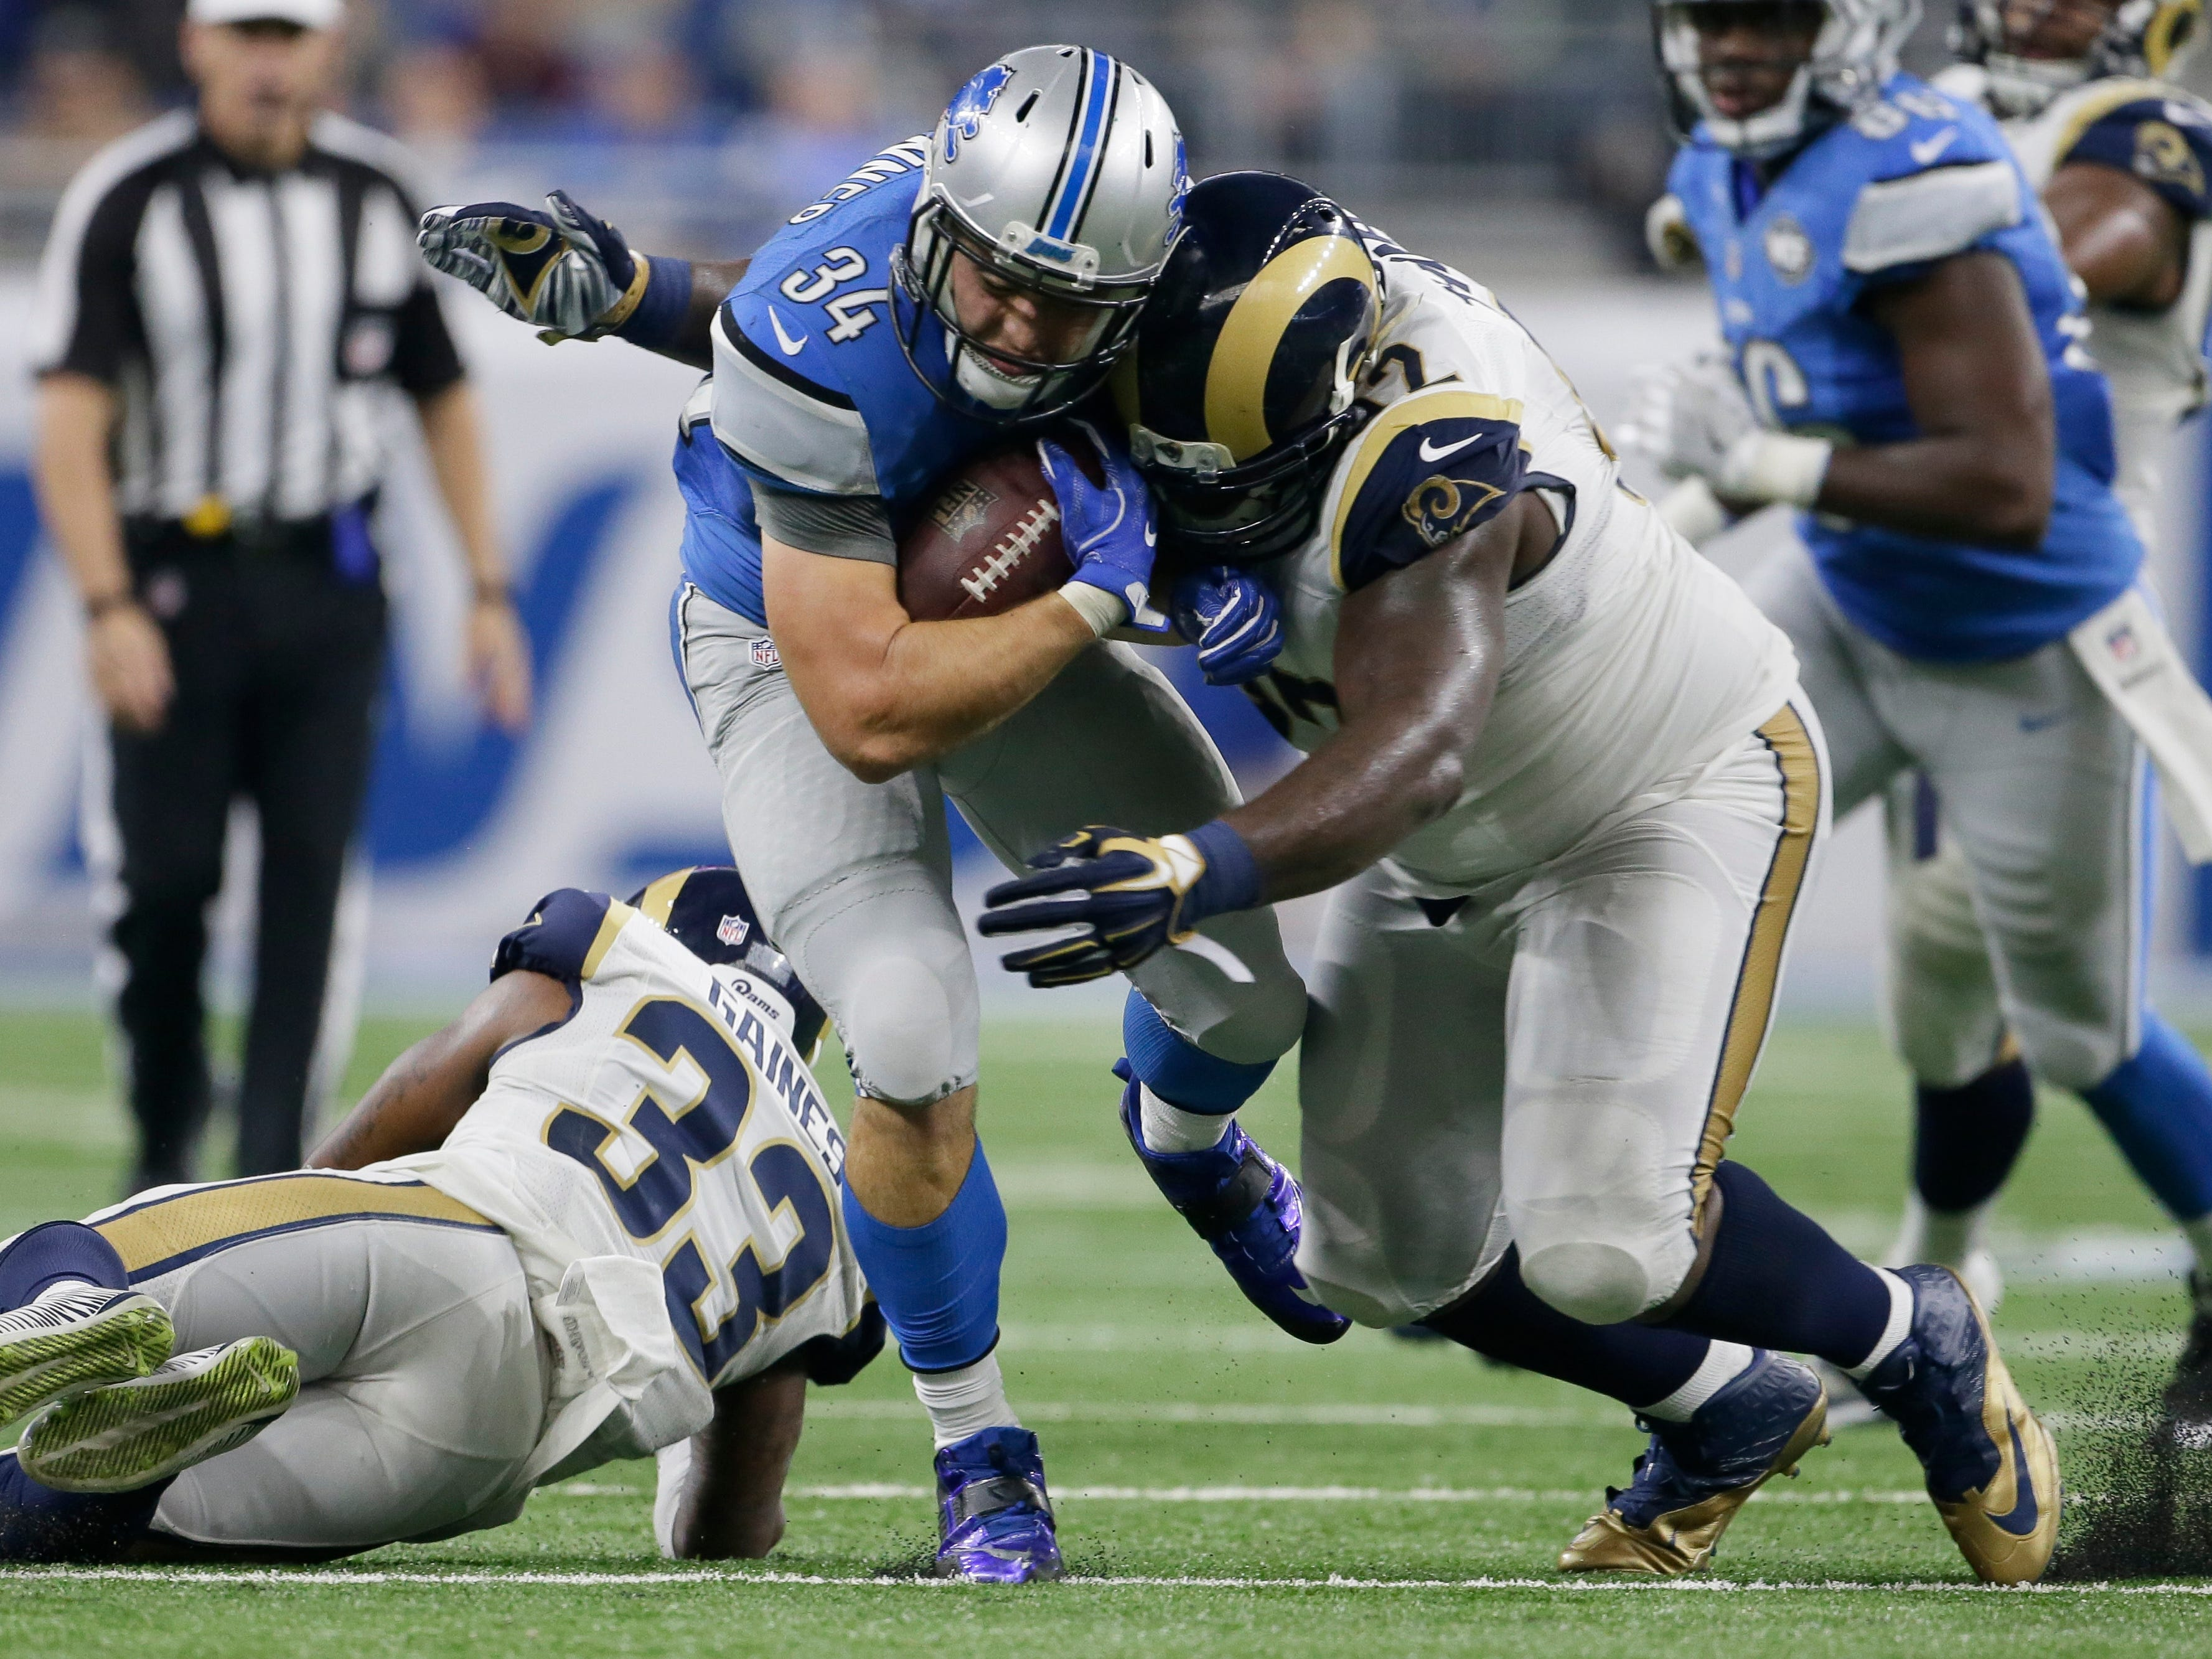 Detroit Lions fullback Zach Zenner (34) is tackled by Los Angeles Rams defensive tackle Cam Thomas during the second half of an NFL football game, Sunday, Oct. 16, 2016, in Detroit. (AP Photo/Duane Burleson)